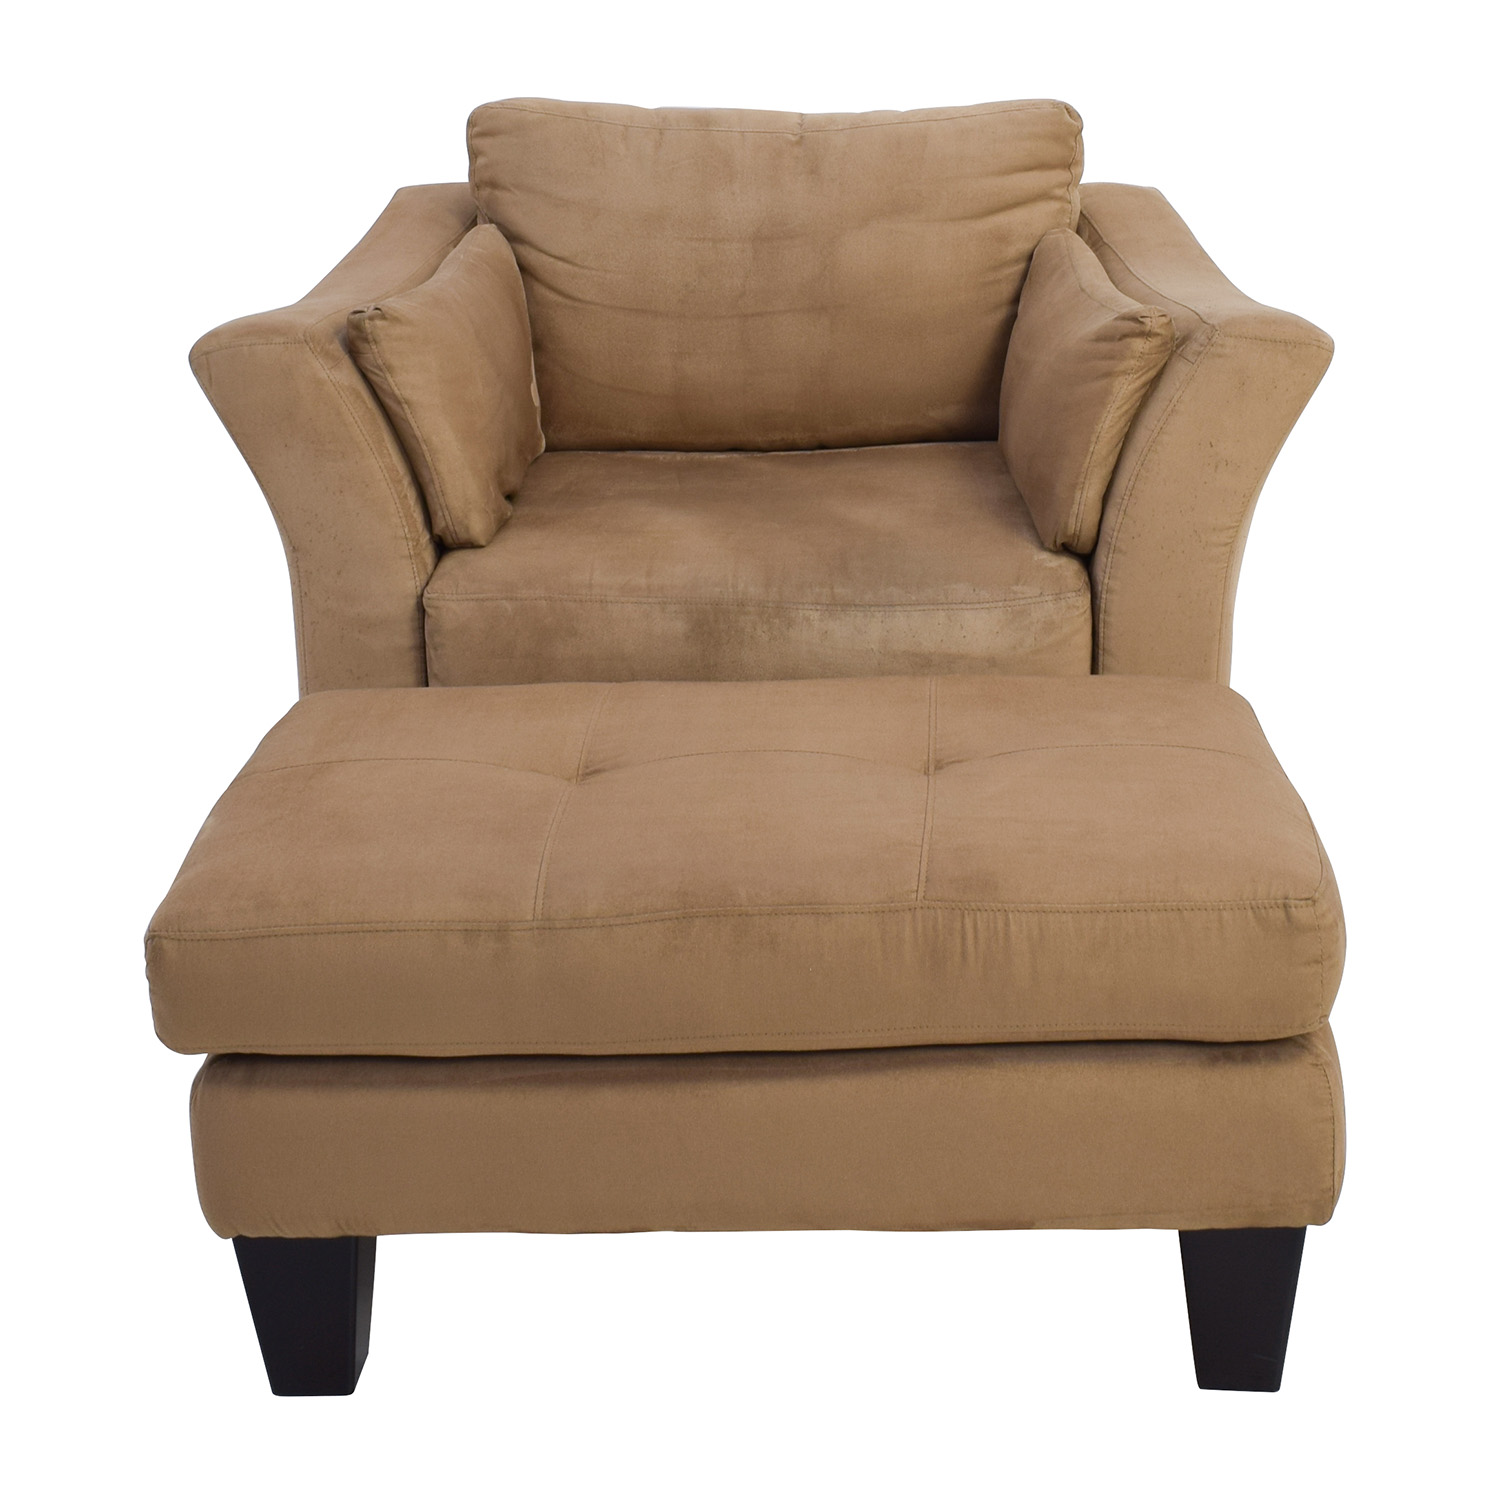 Convertible Ottoman Chair Costco: Jennifer Convertibles Jennifer Convertible Brown